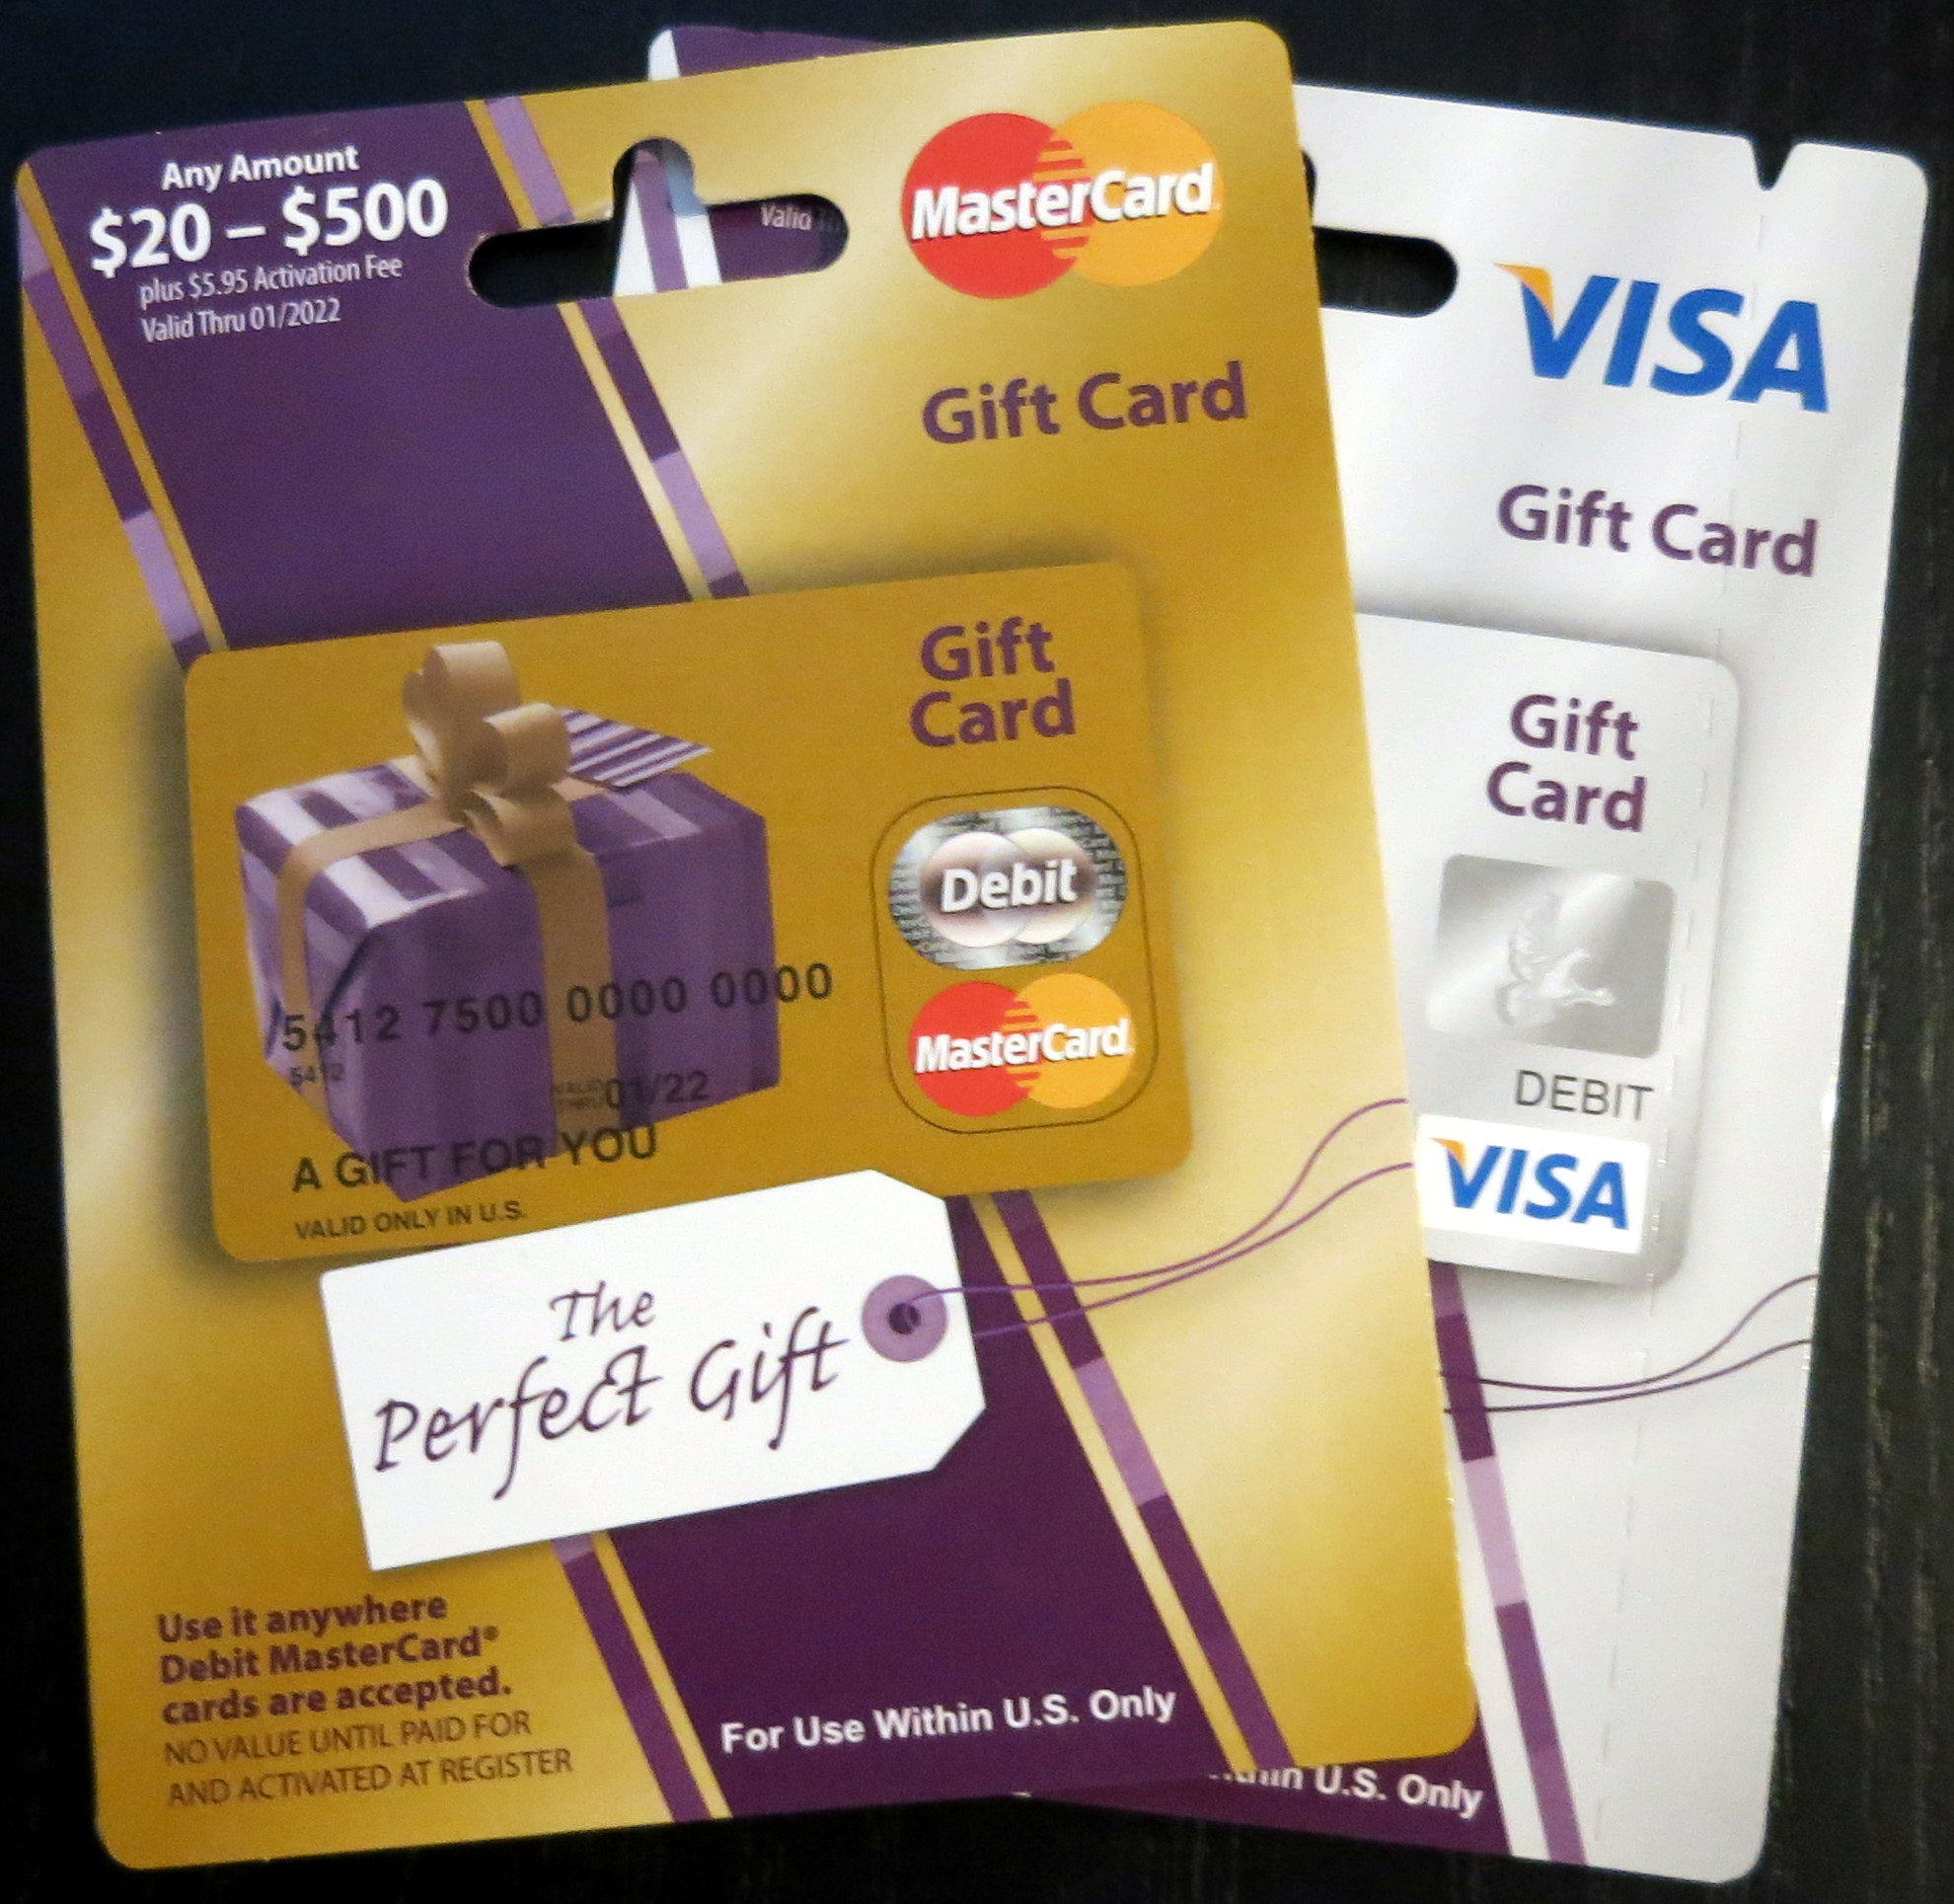 visa gift card prepaid mastercard - How To Get A Prepaid Visa Card